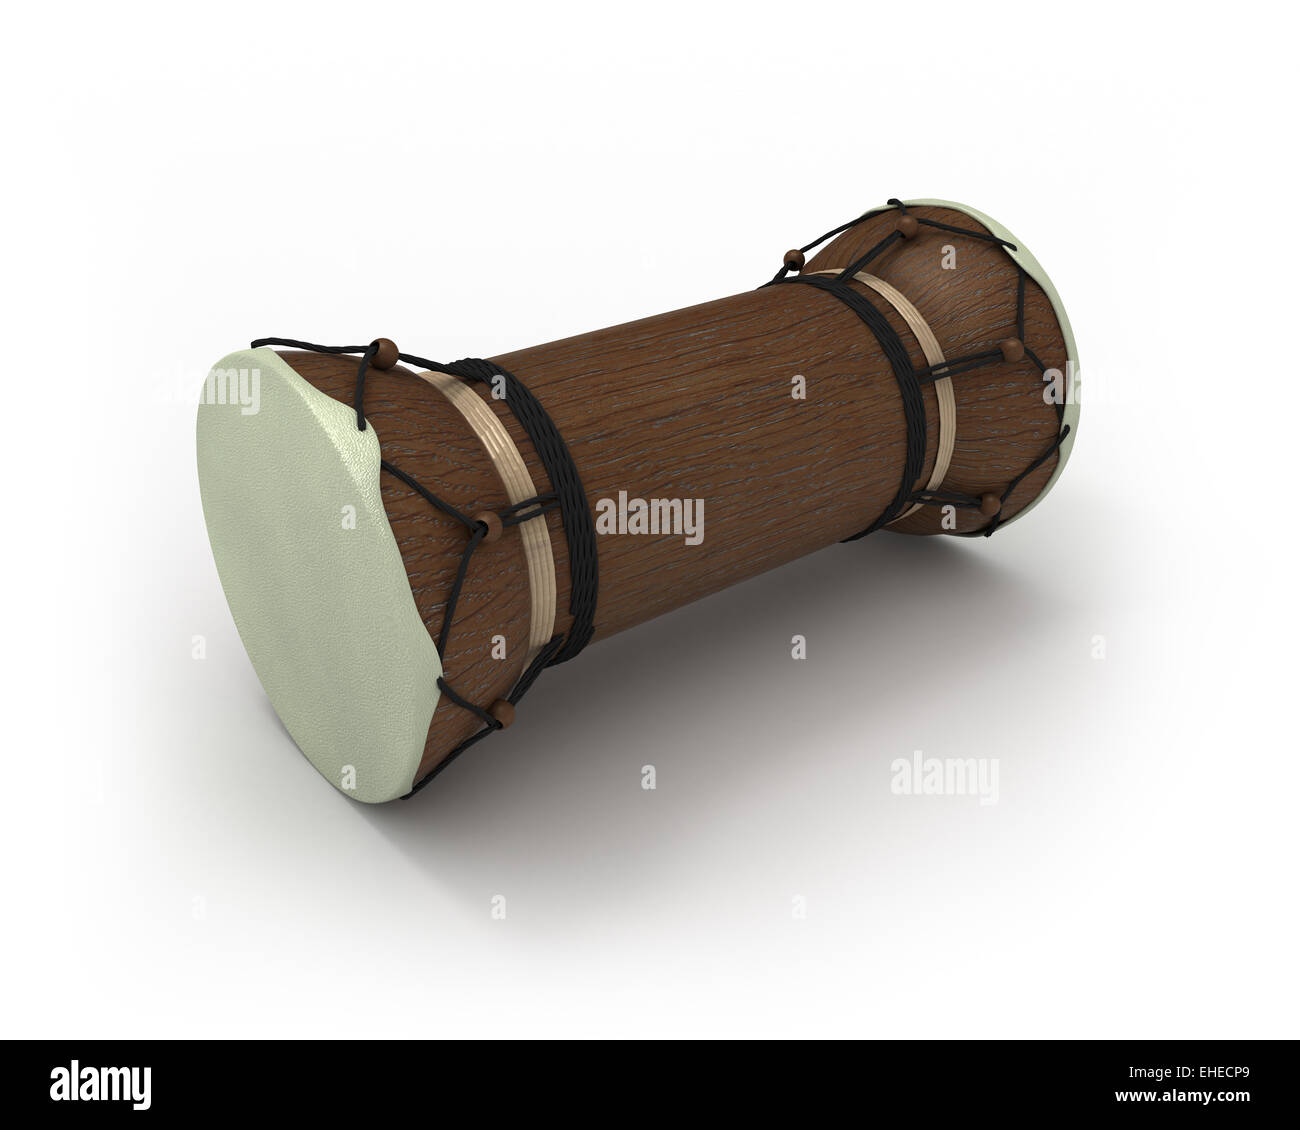 African talking drum in perspective - Stock Image